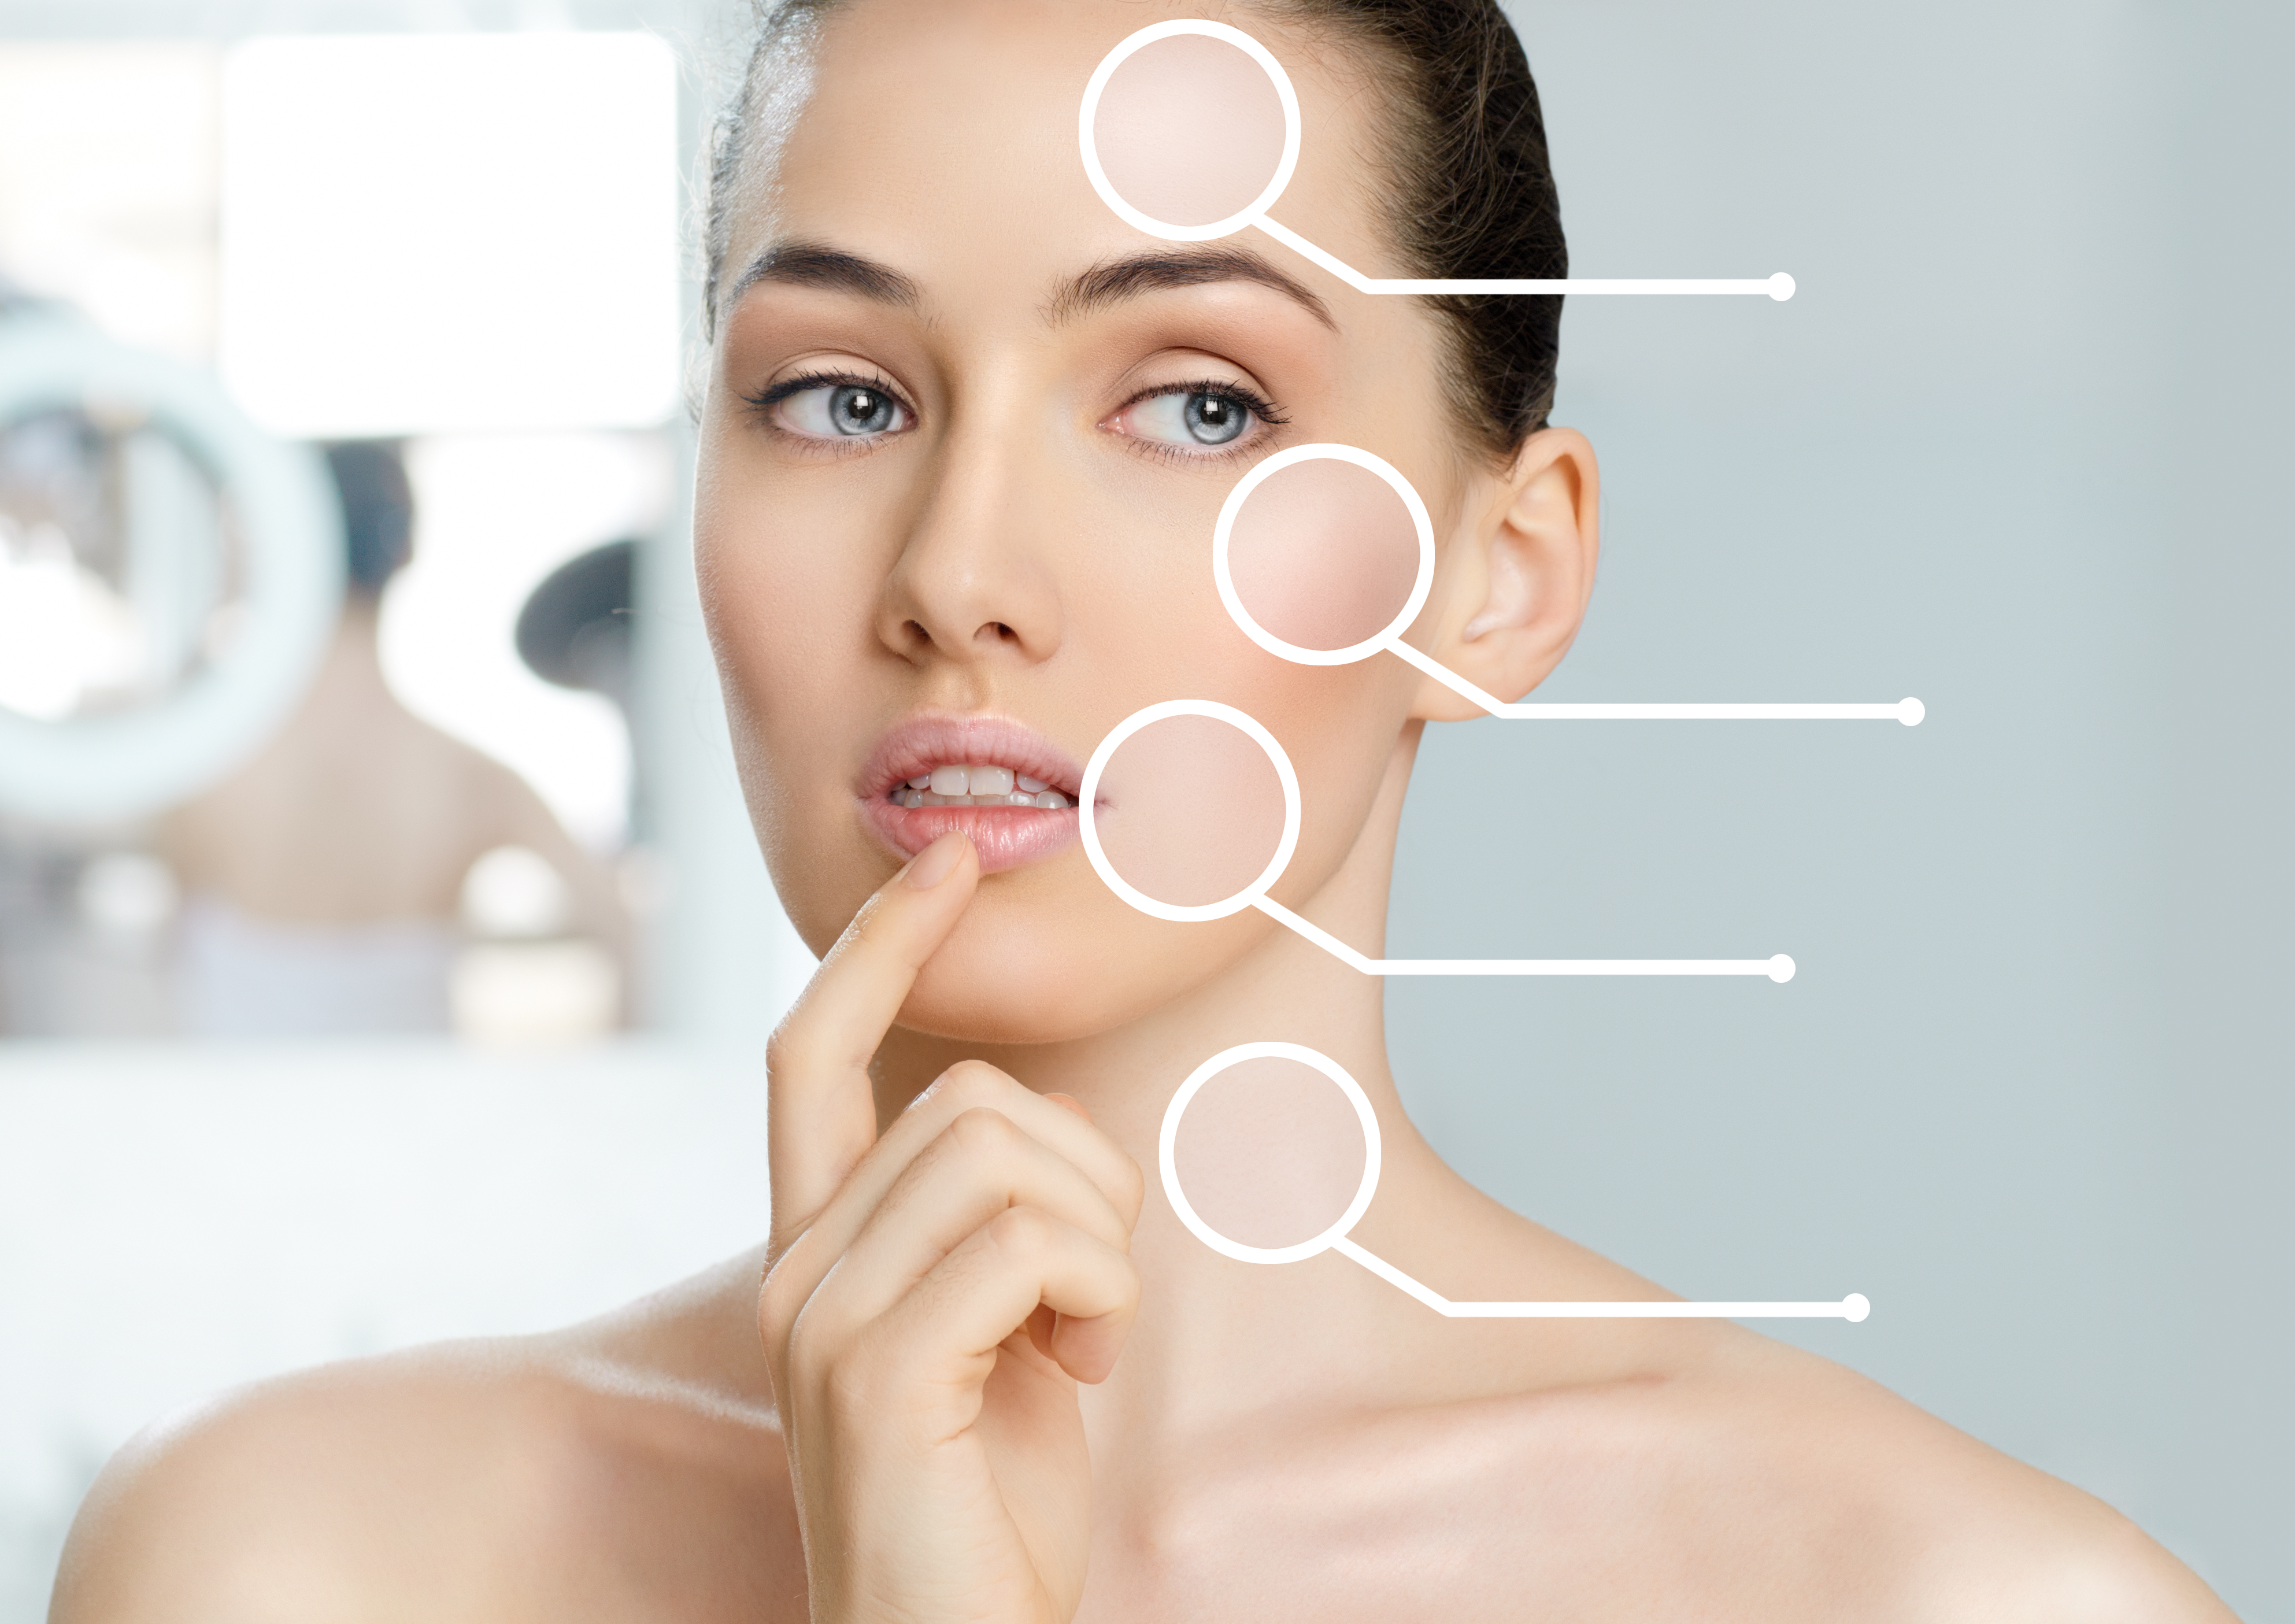 Anti-pollution Skincare Products Market Size Volume, Share, Demand growth, Business Opportunity by 2031